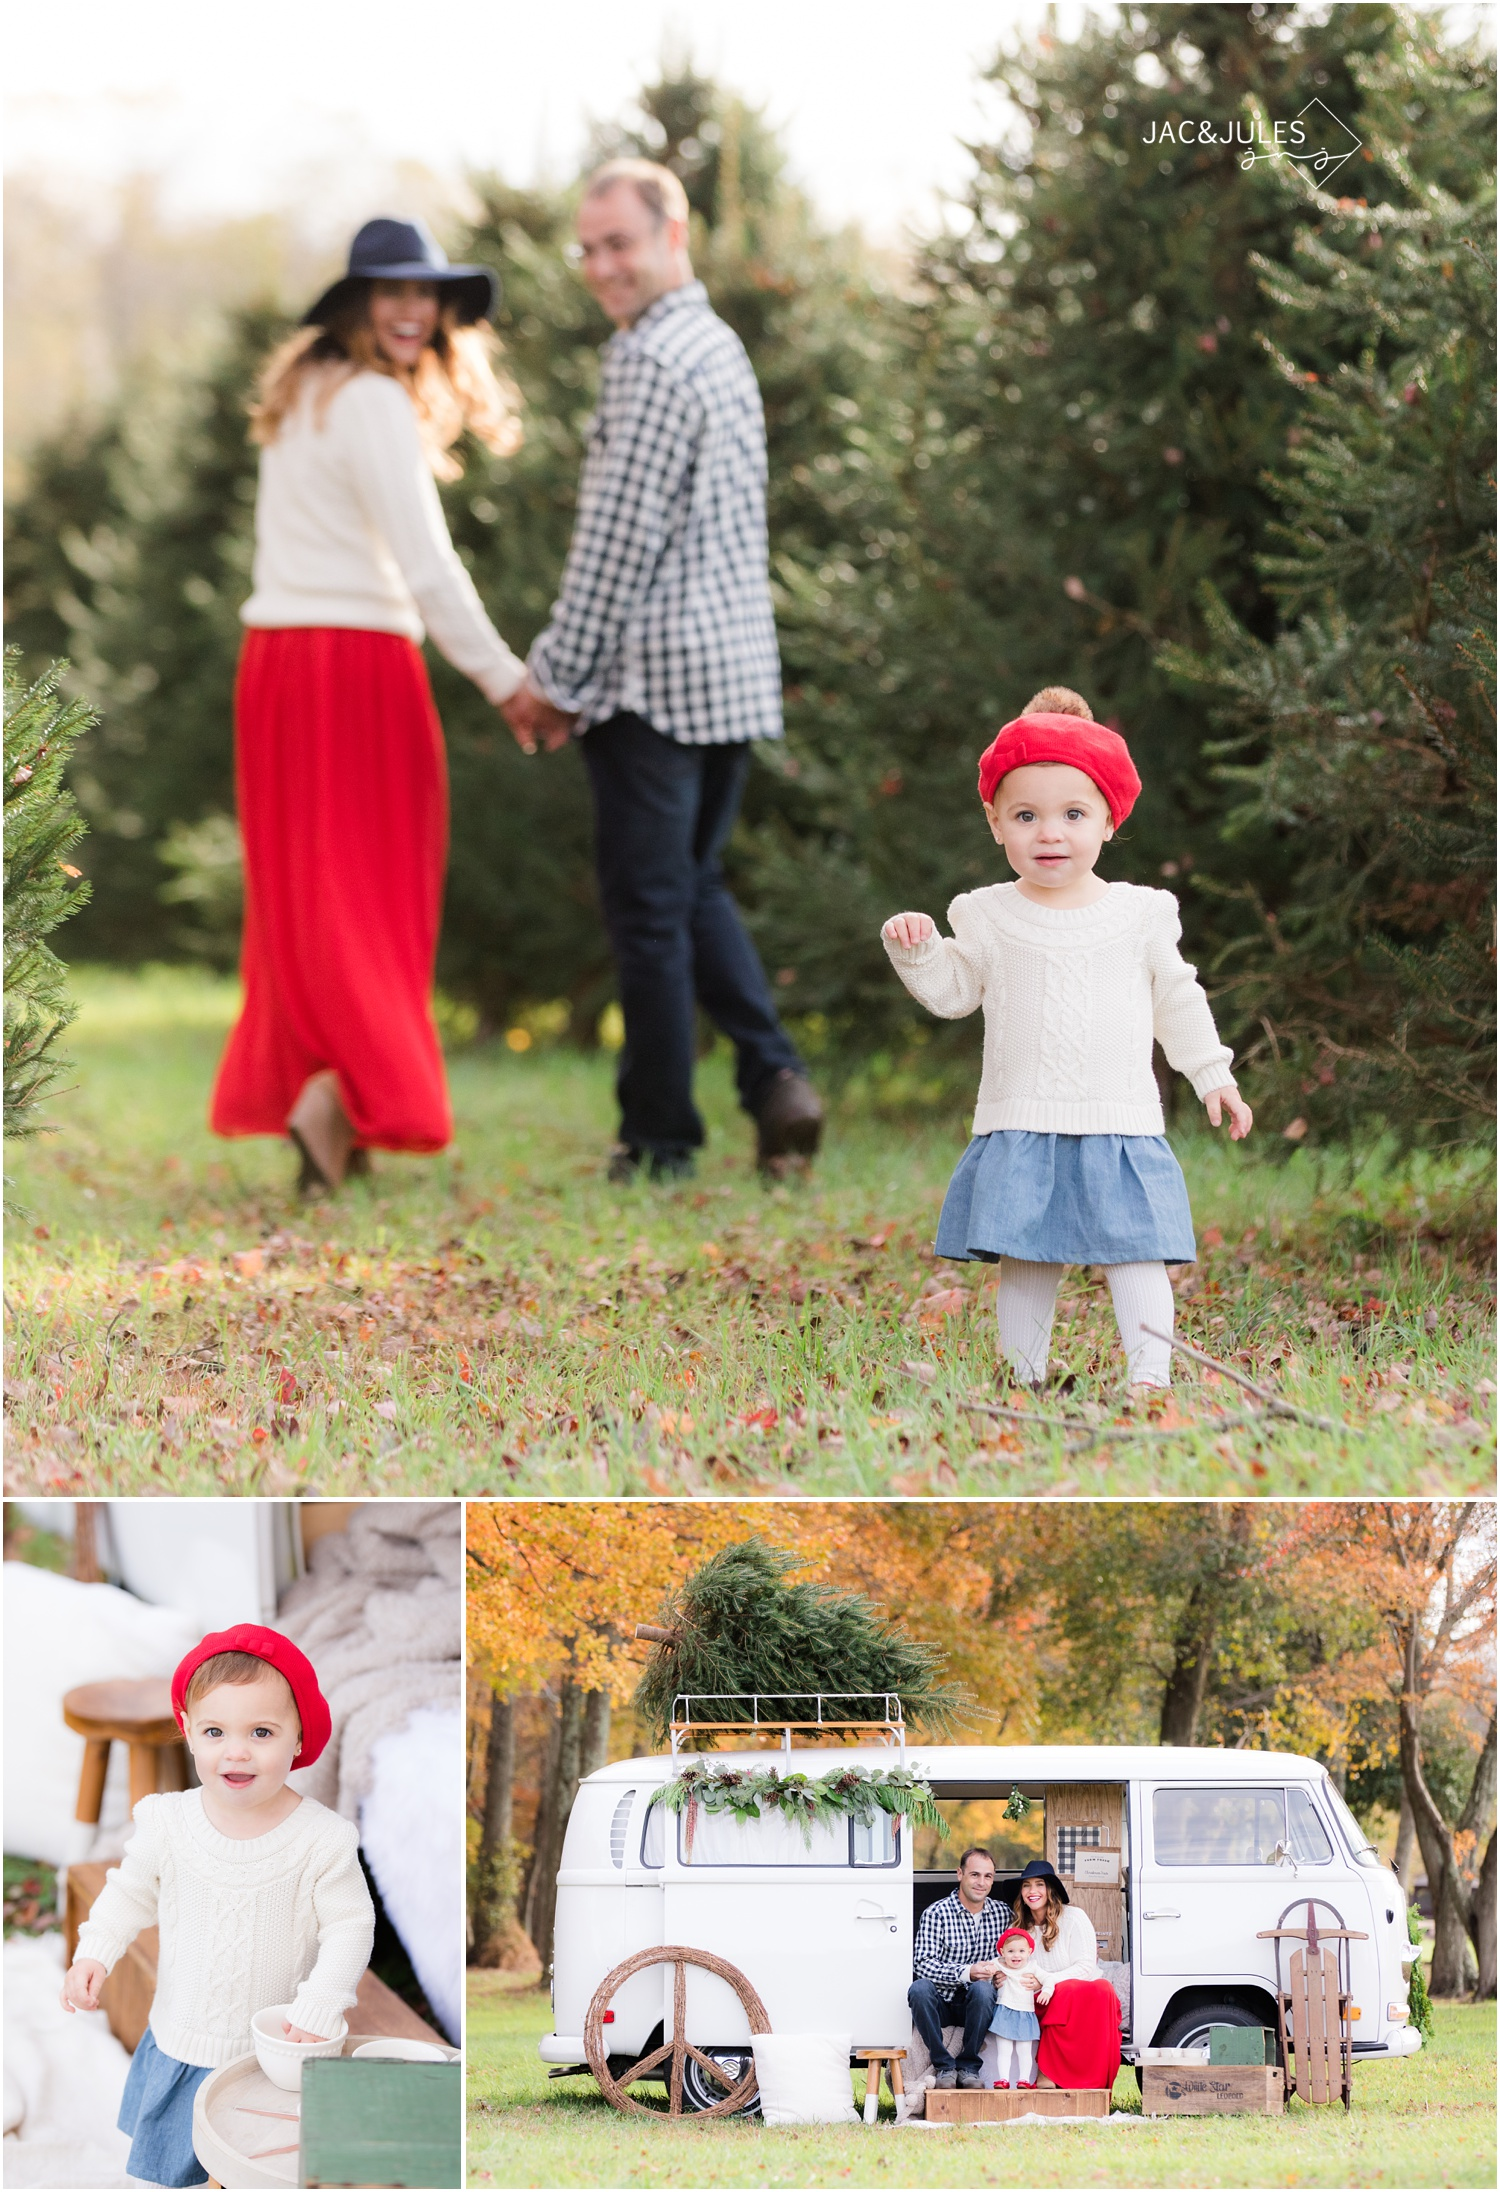 wardrobe inspiration for holiday photos with vintage VW bus in Freehold, NJ.